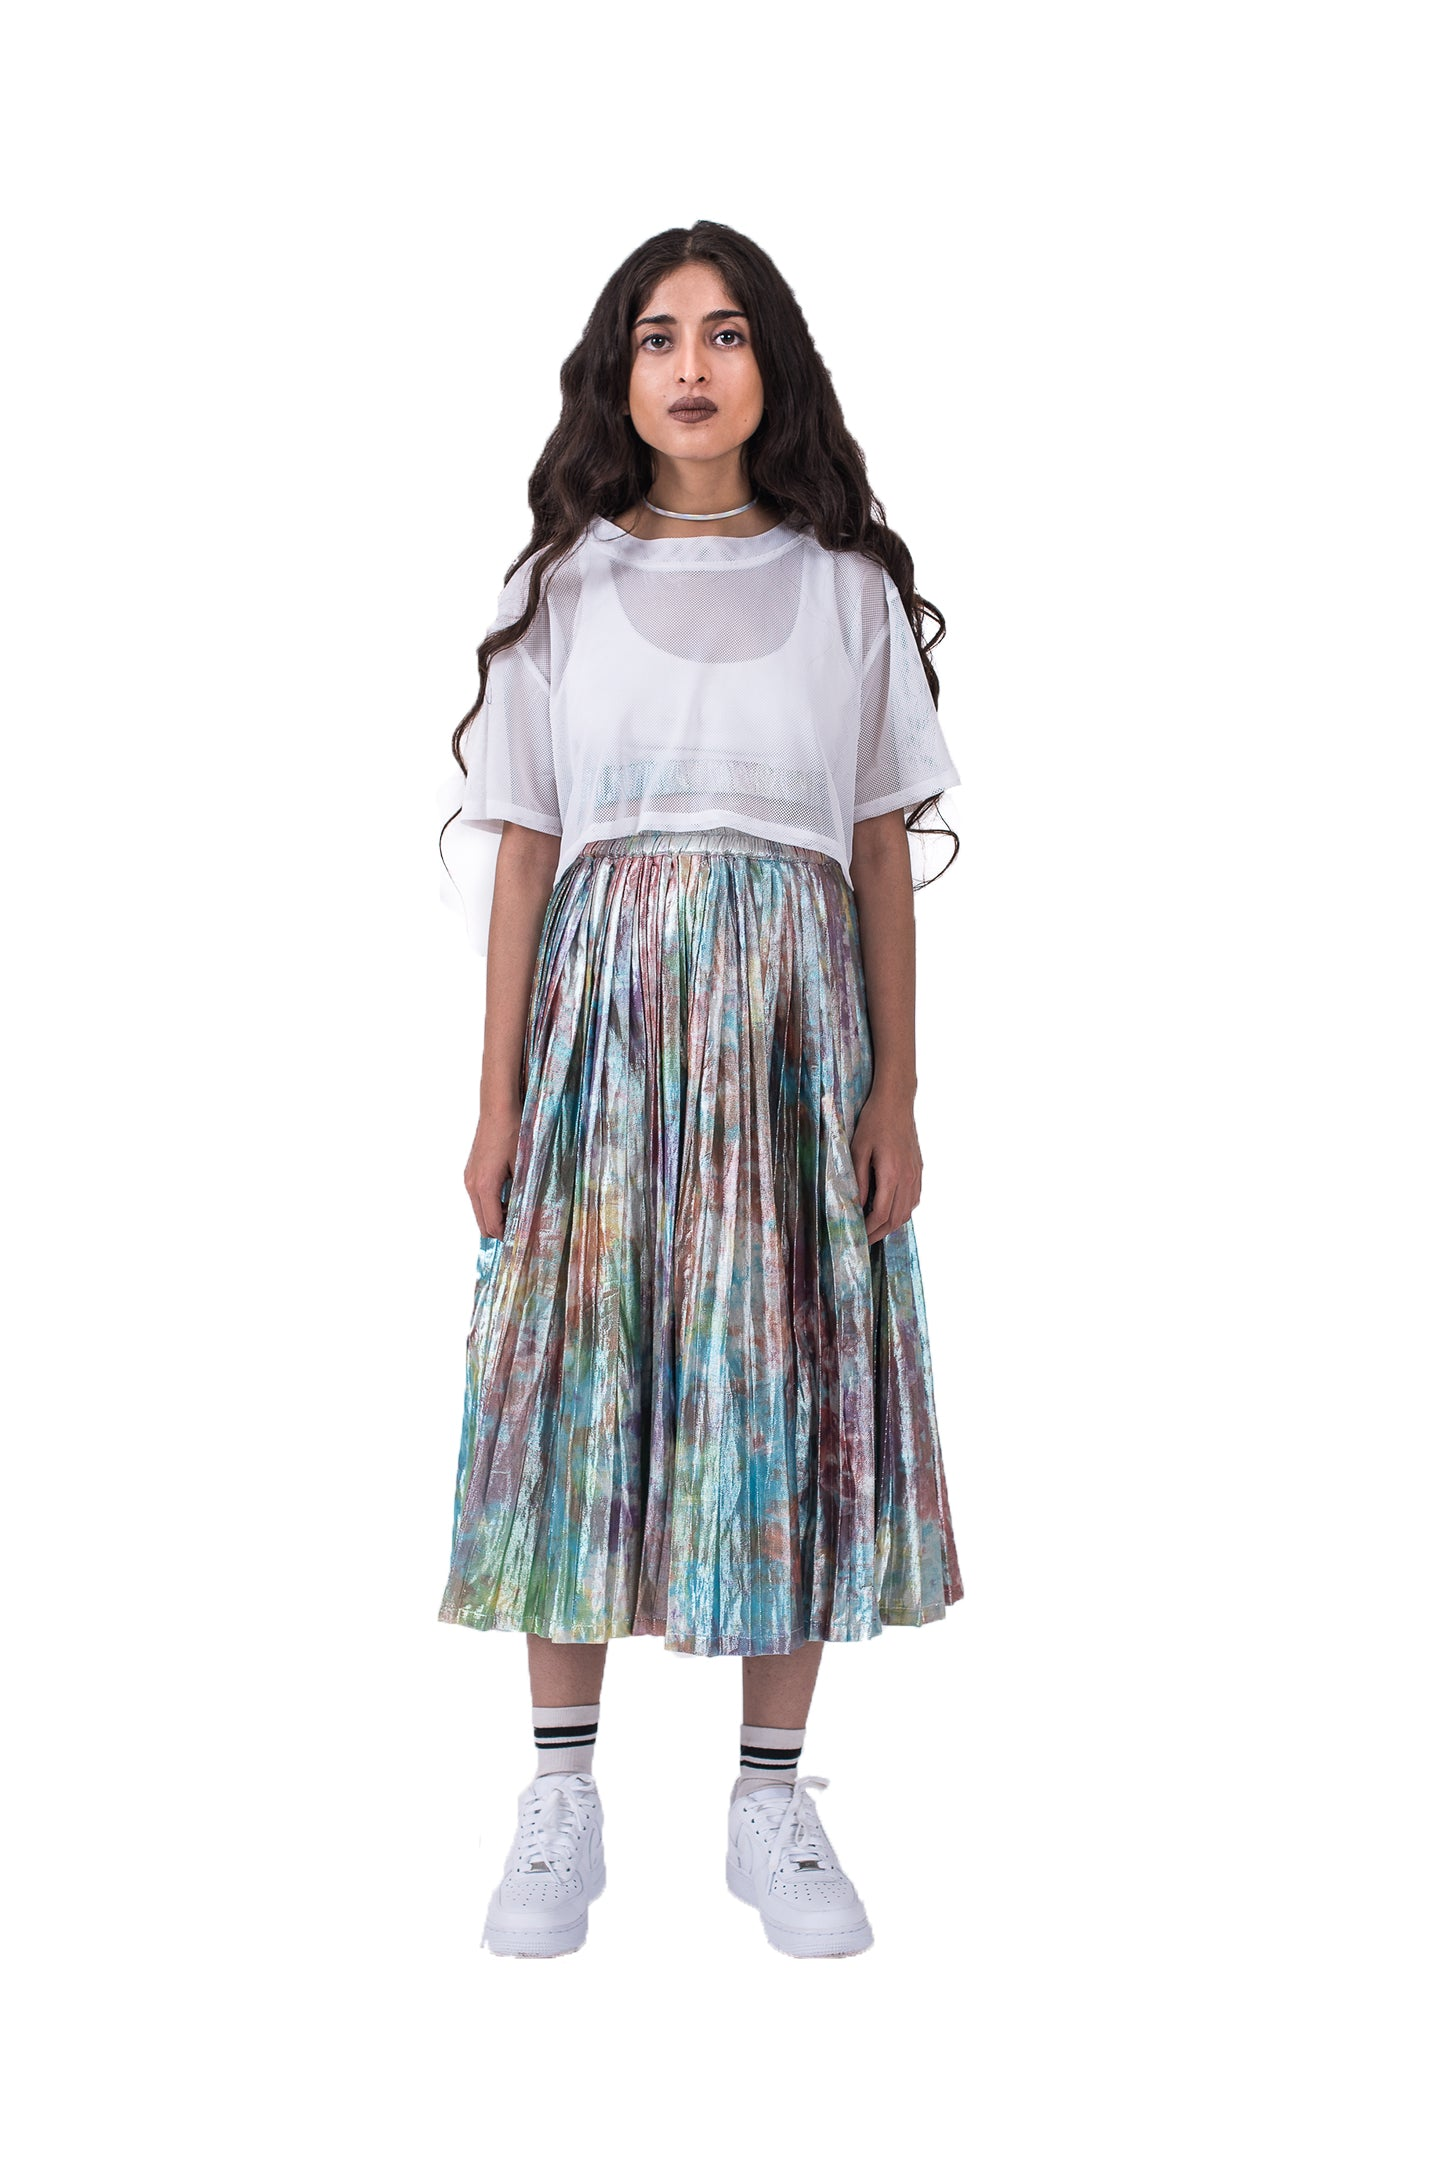 459702c4aa5af SHIMMA PLEATED SKIRT (REVERSIBLE) – NorBlack NorWhite